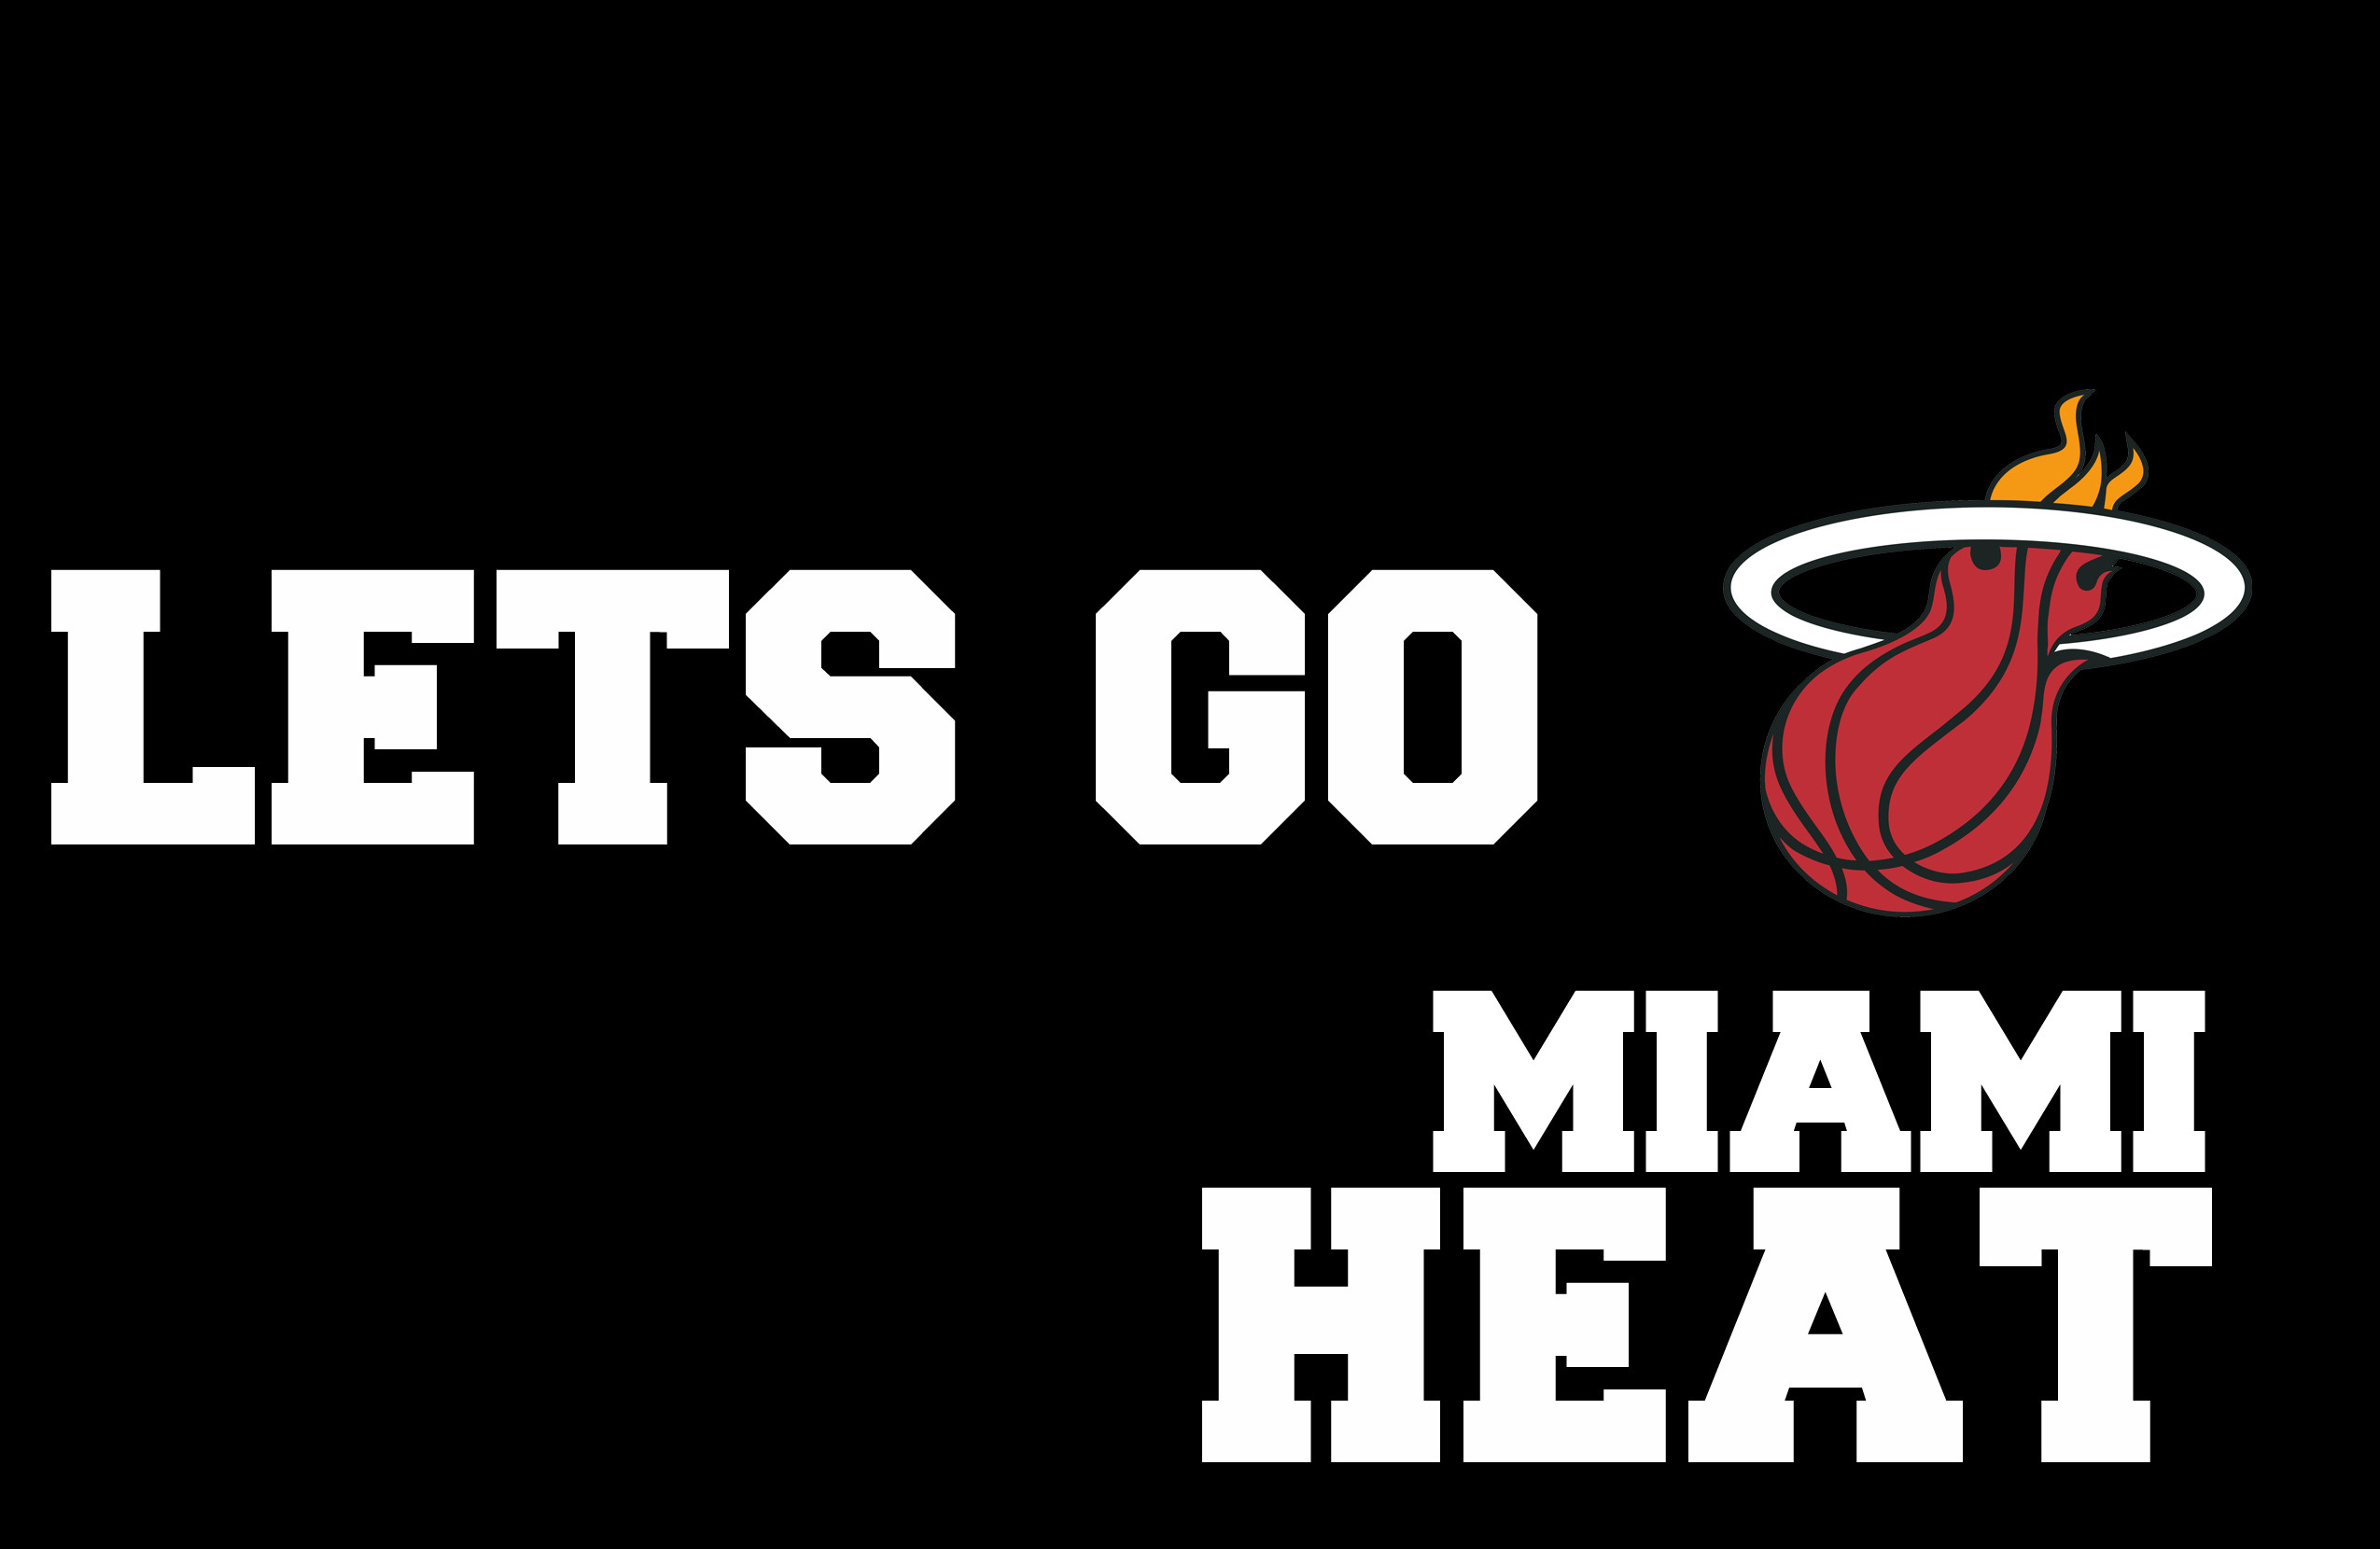 Miami Heat Wallpapers HD Pictures Download.